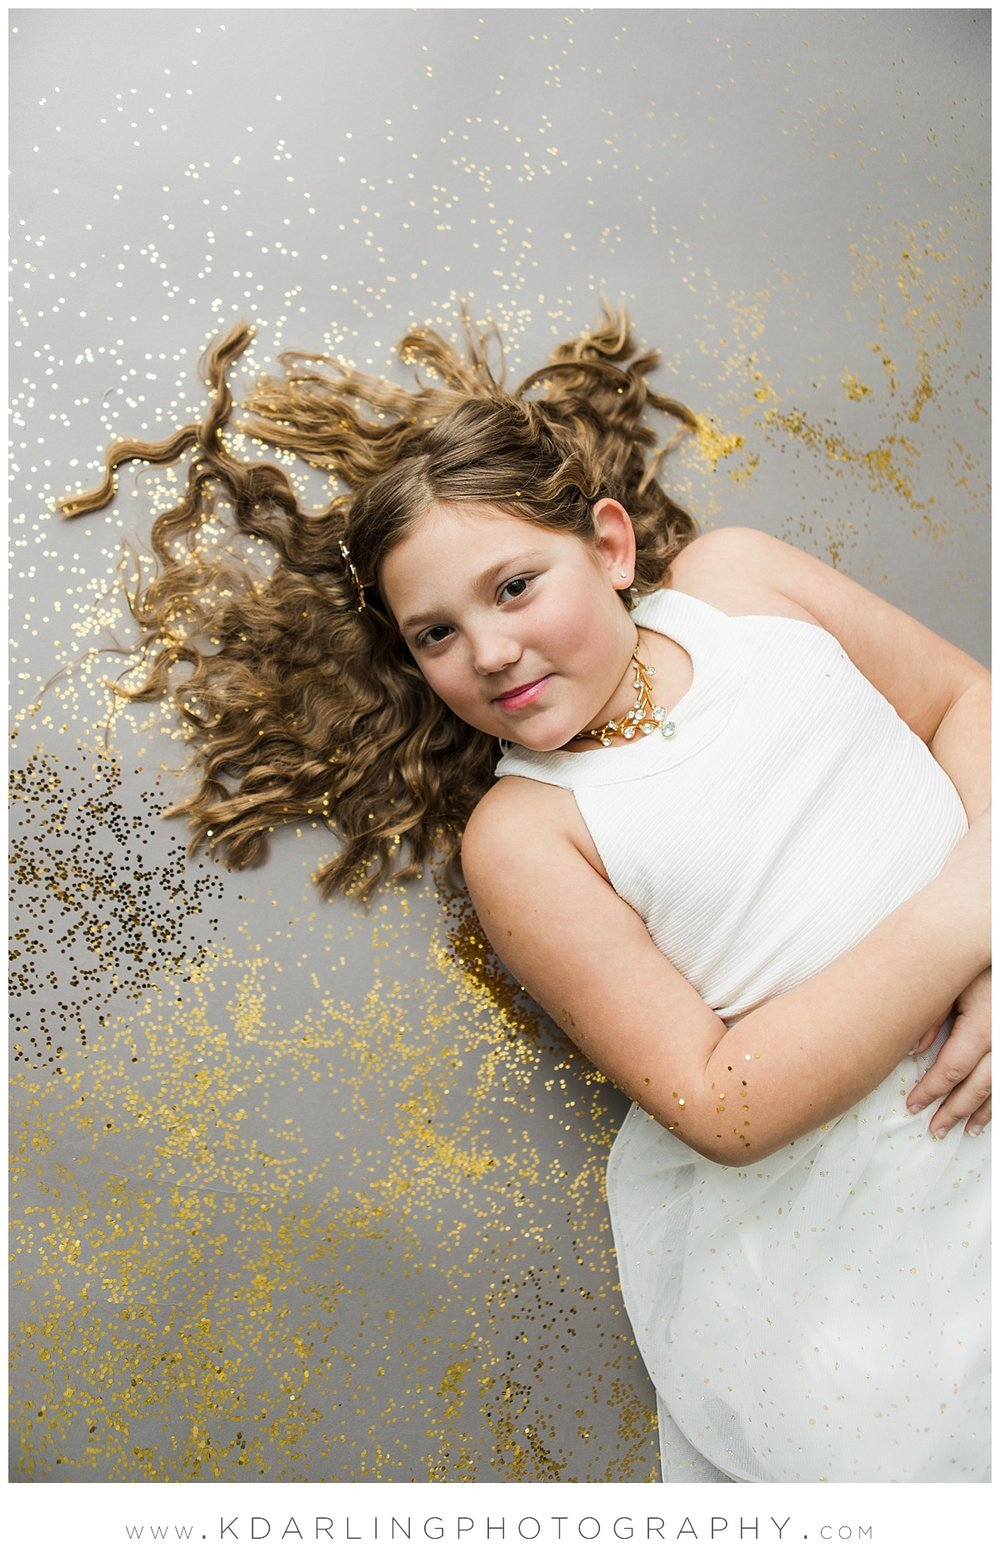 Tween girl in white dress laying in glitter